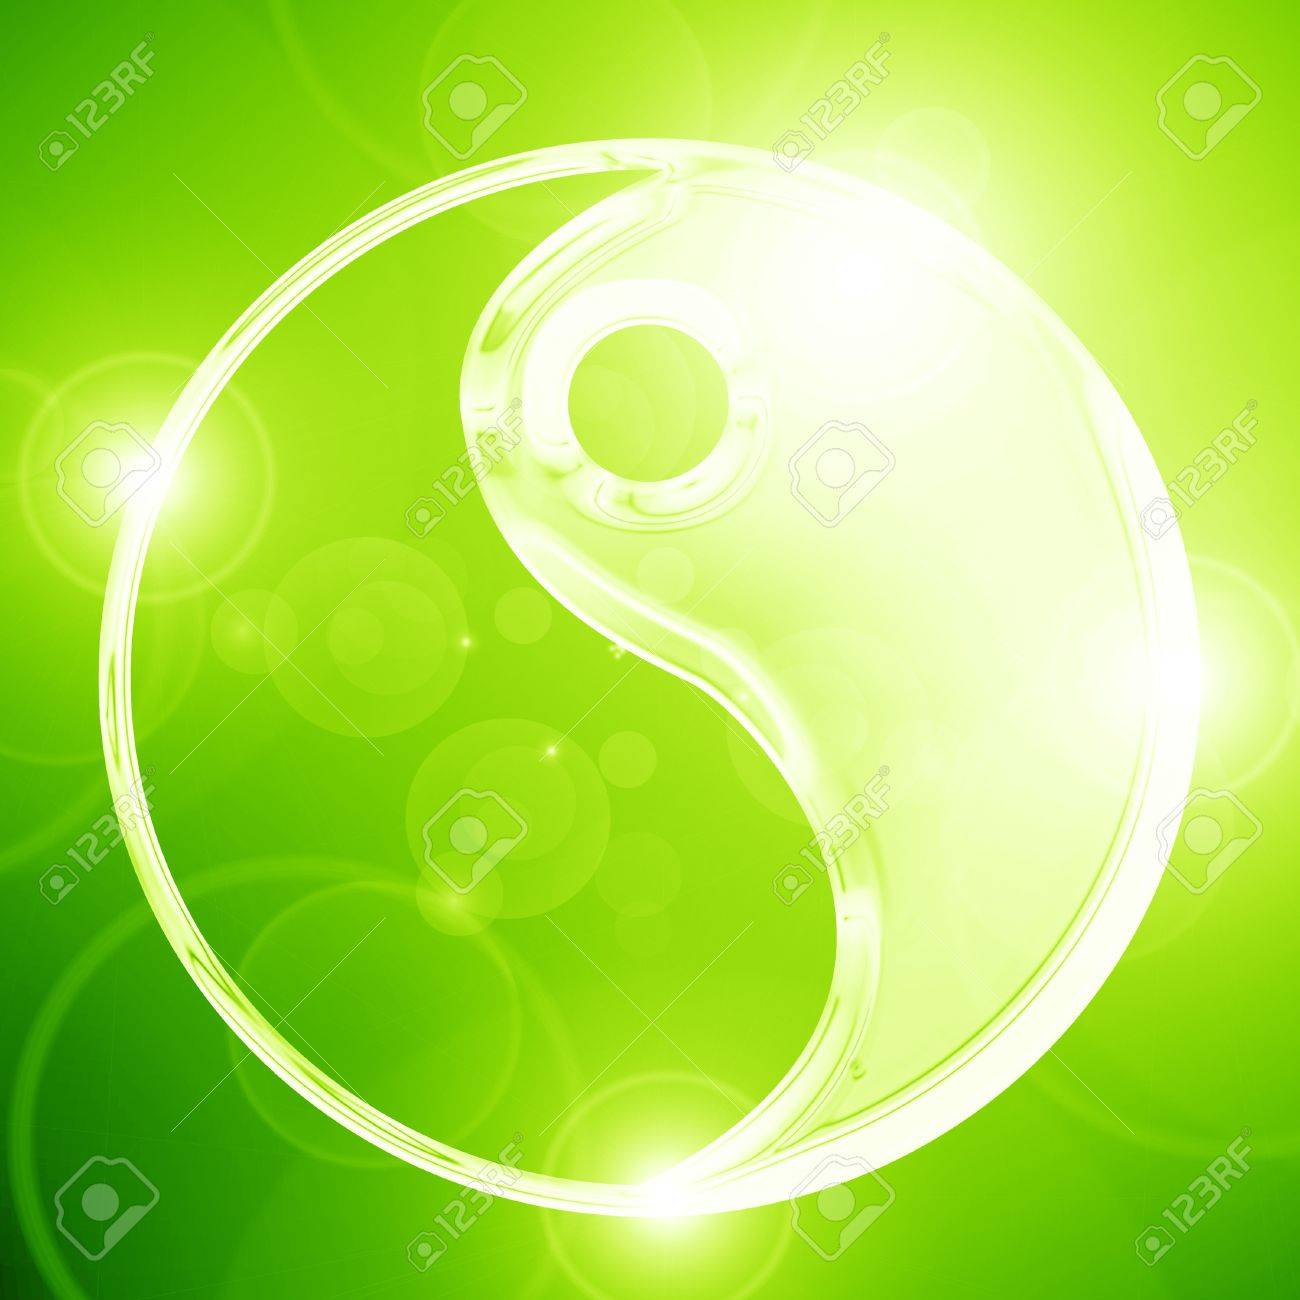 Yin Yang sign on a glowing background Stock Photo - 15139960